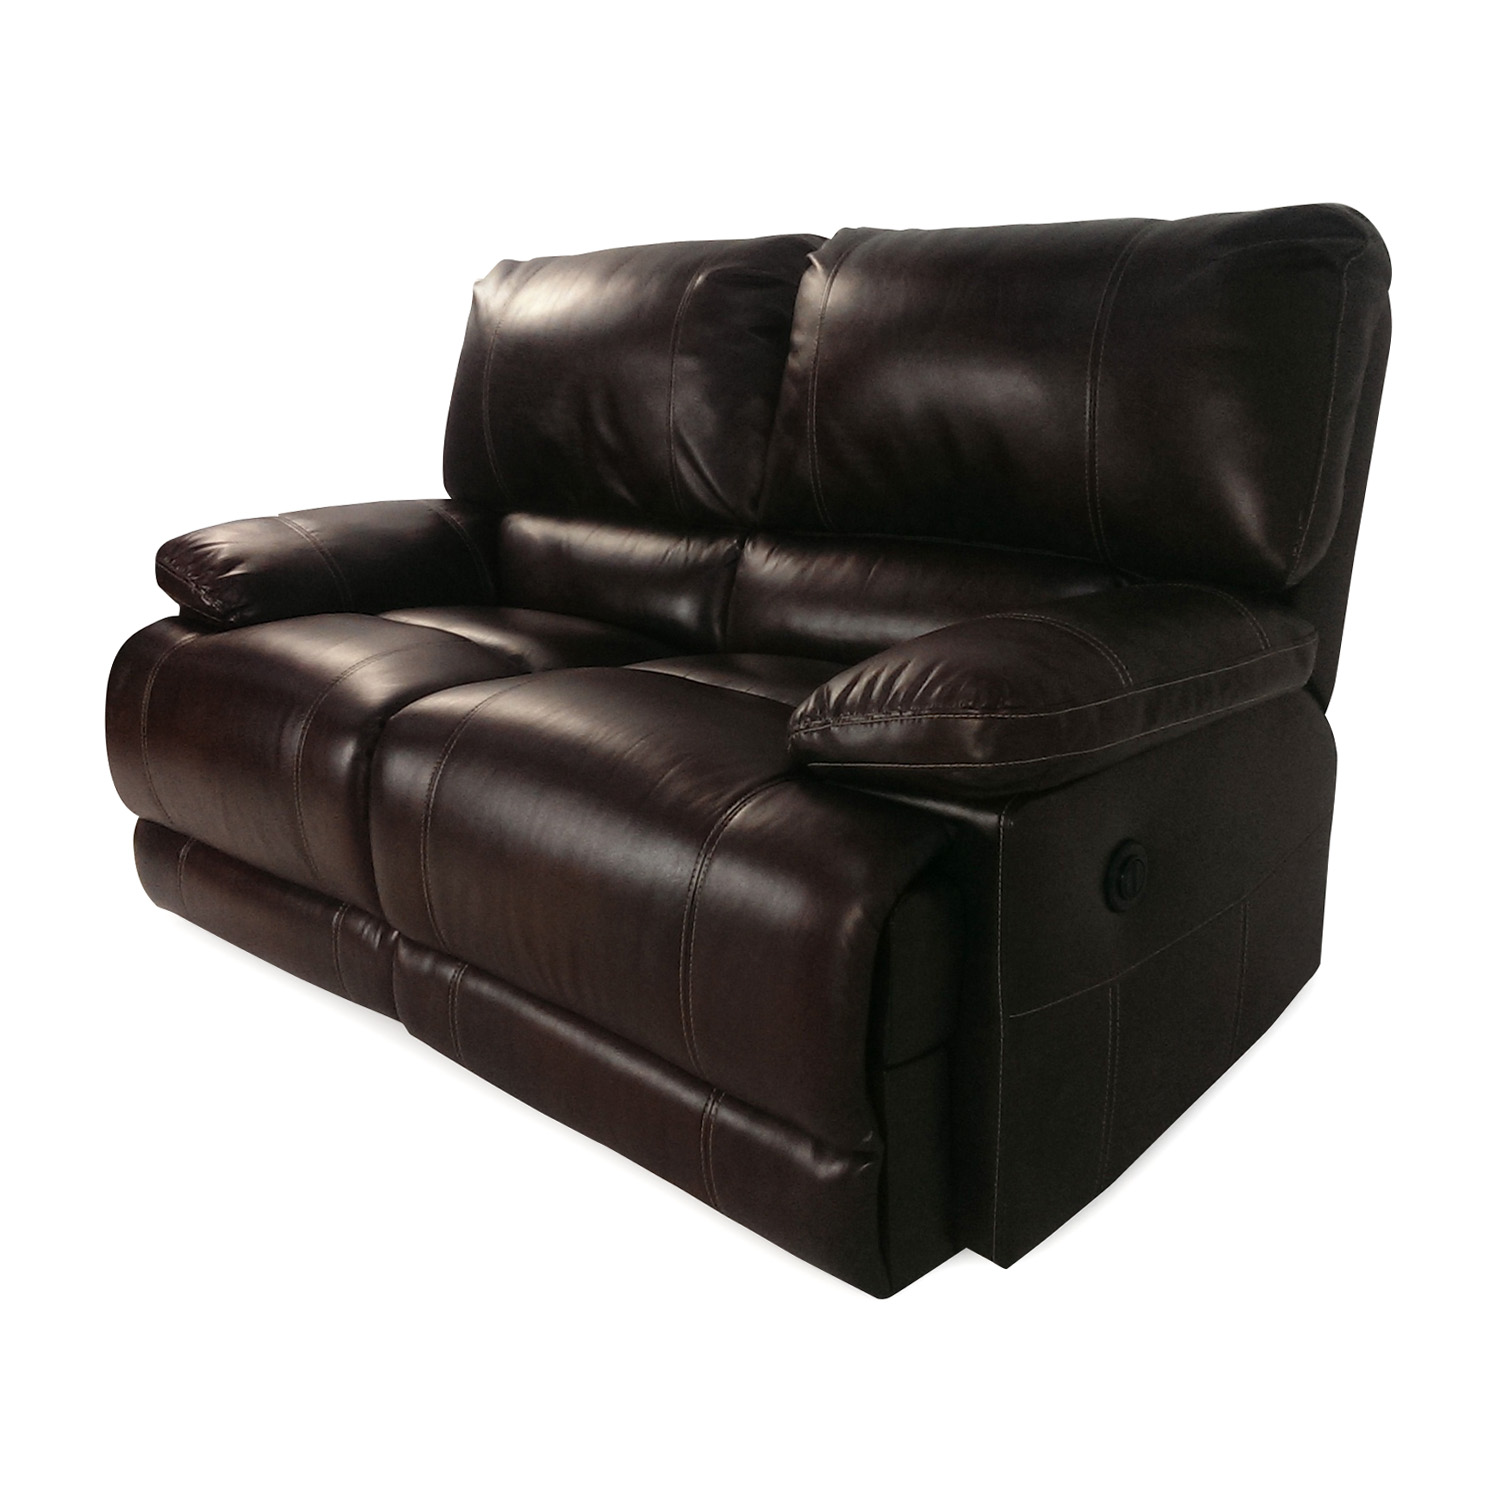 Bobs Furniture Bobs Furniture Reclining Loveseat used